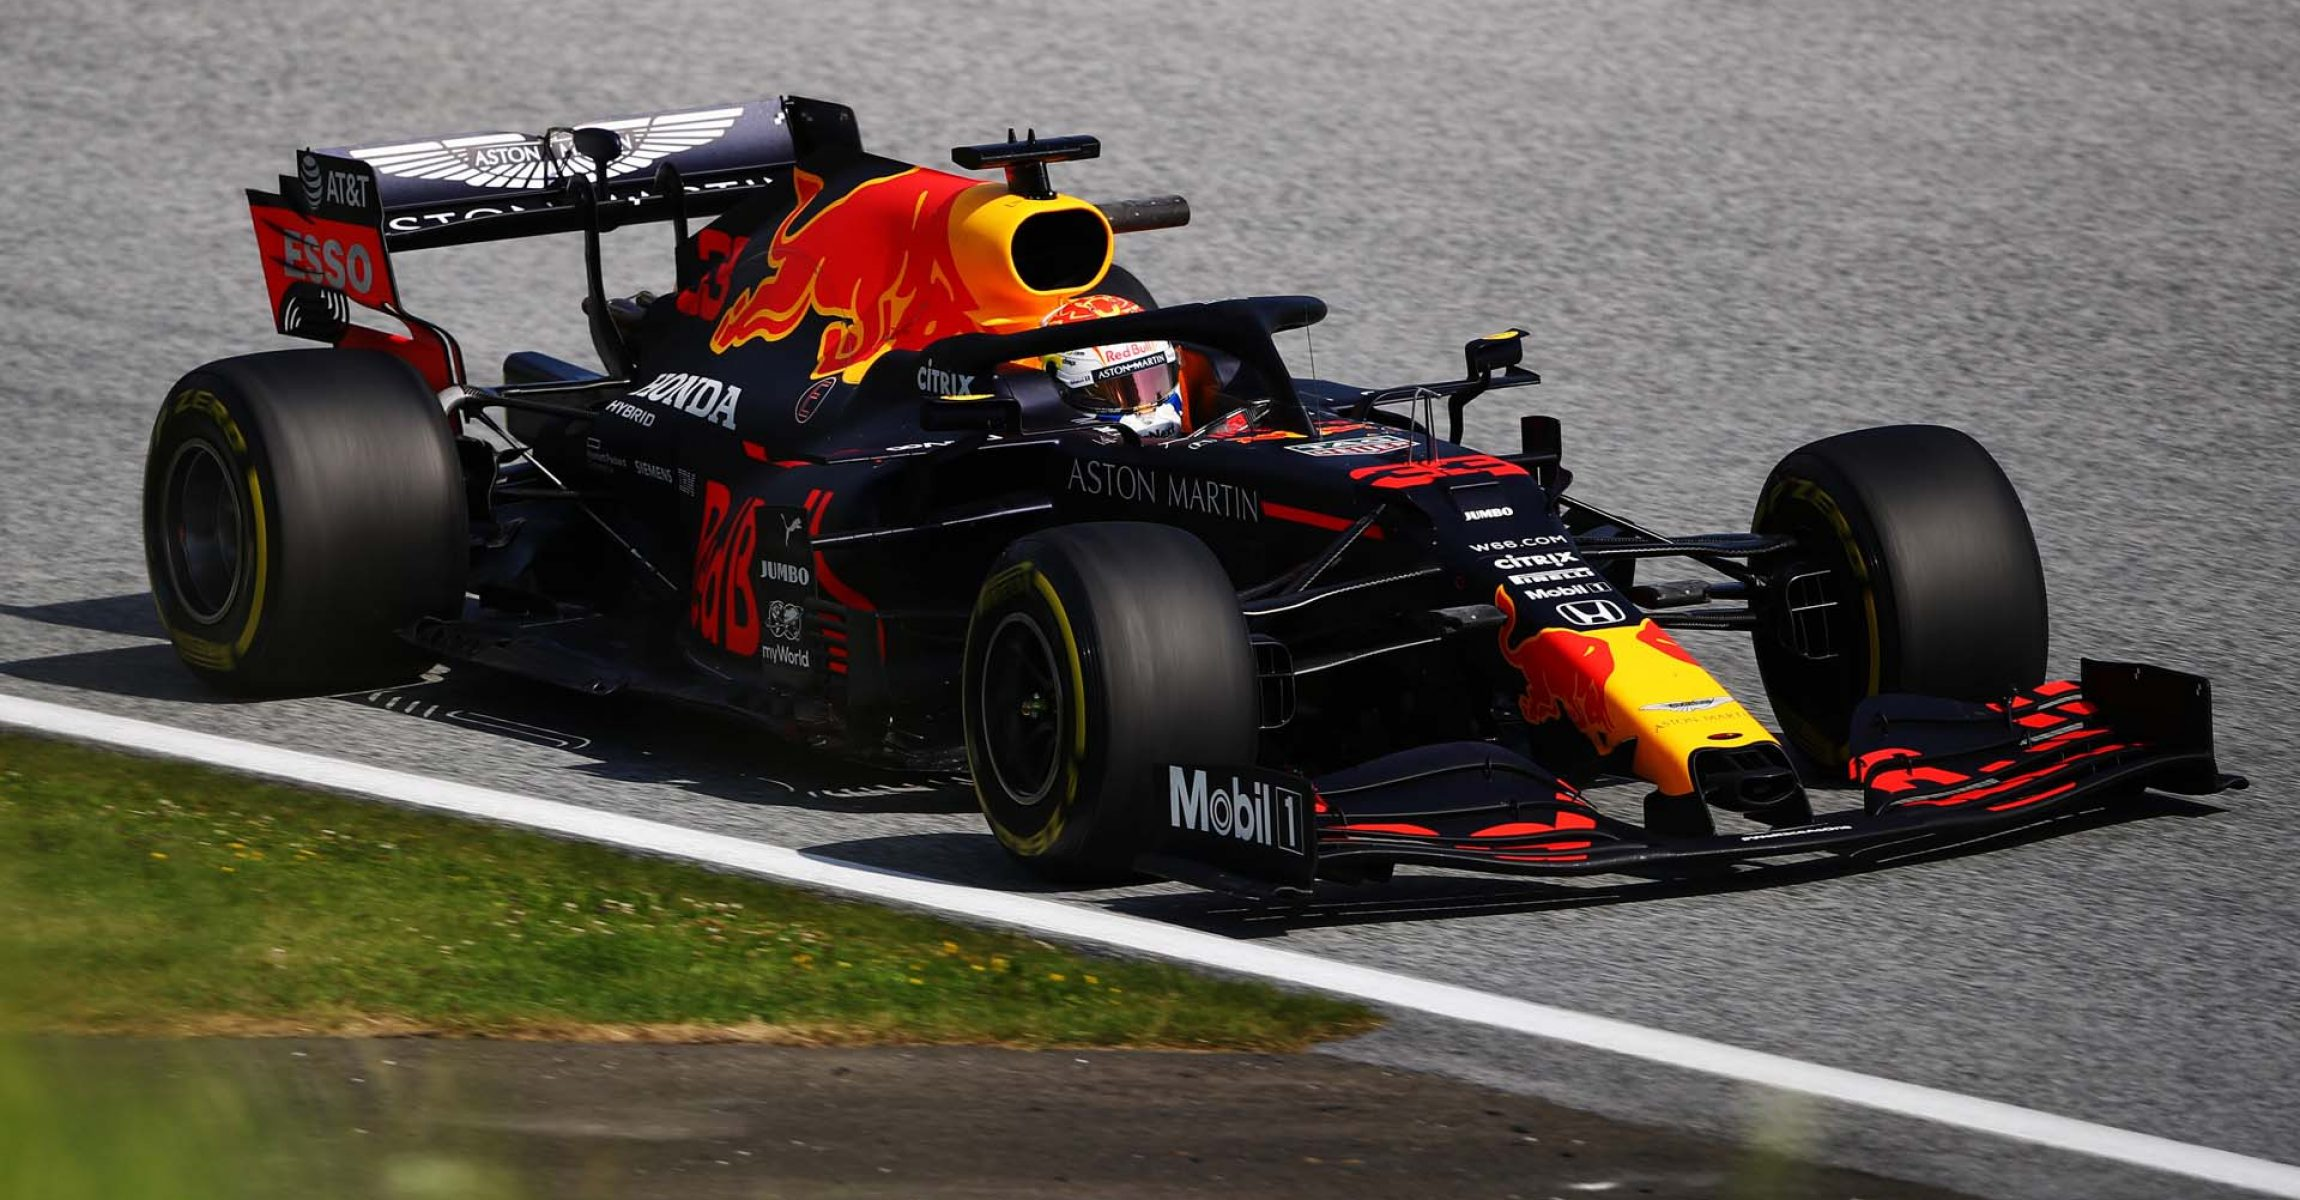 SPIELBERG, AUSTRIA - JULY 10: Max Verstappen of the Netherlands driving the (33) Aston Martin Red Bull Racing RB16 on track during practice for the F1 Grand Prix of Styria at Red Bull Ring on July 10, 2020 in Spielberg, Austria. (Photo by Bryn Lennon/Getty Images) // Getty Images / Red Bull Content Pool // AP-24KAPDBDW2111 // Usage for editorial use only //